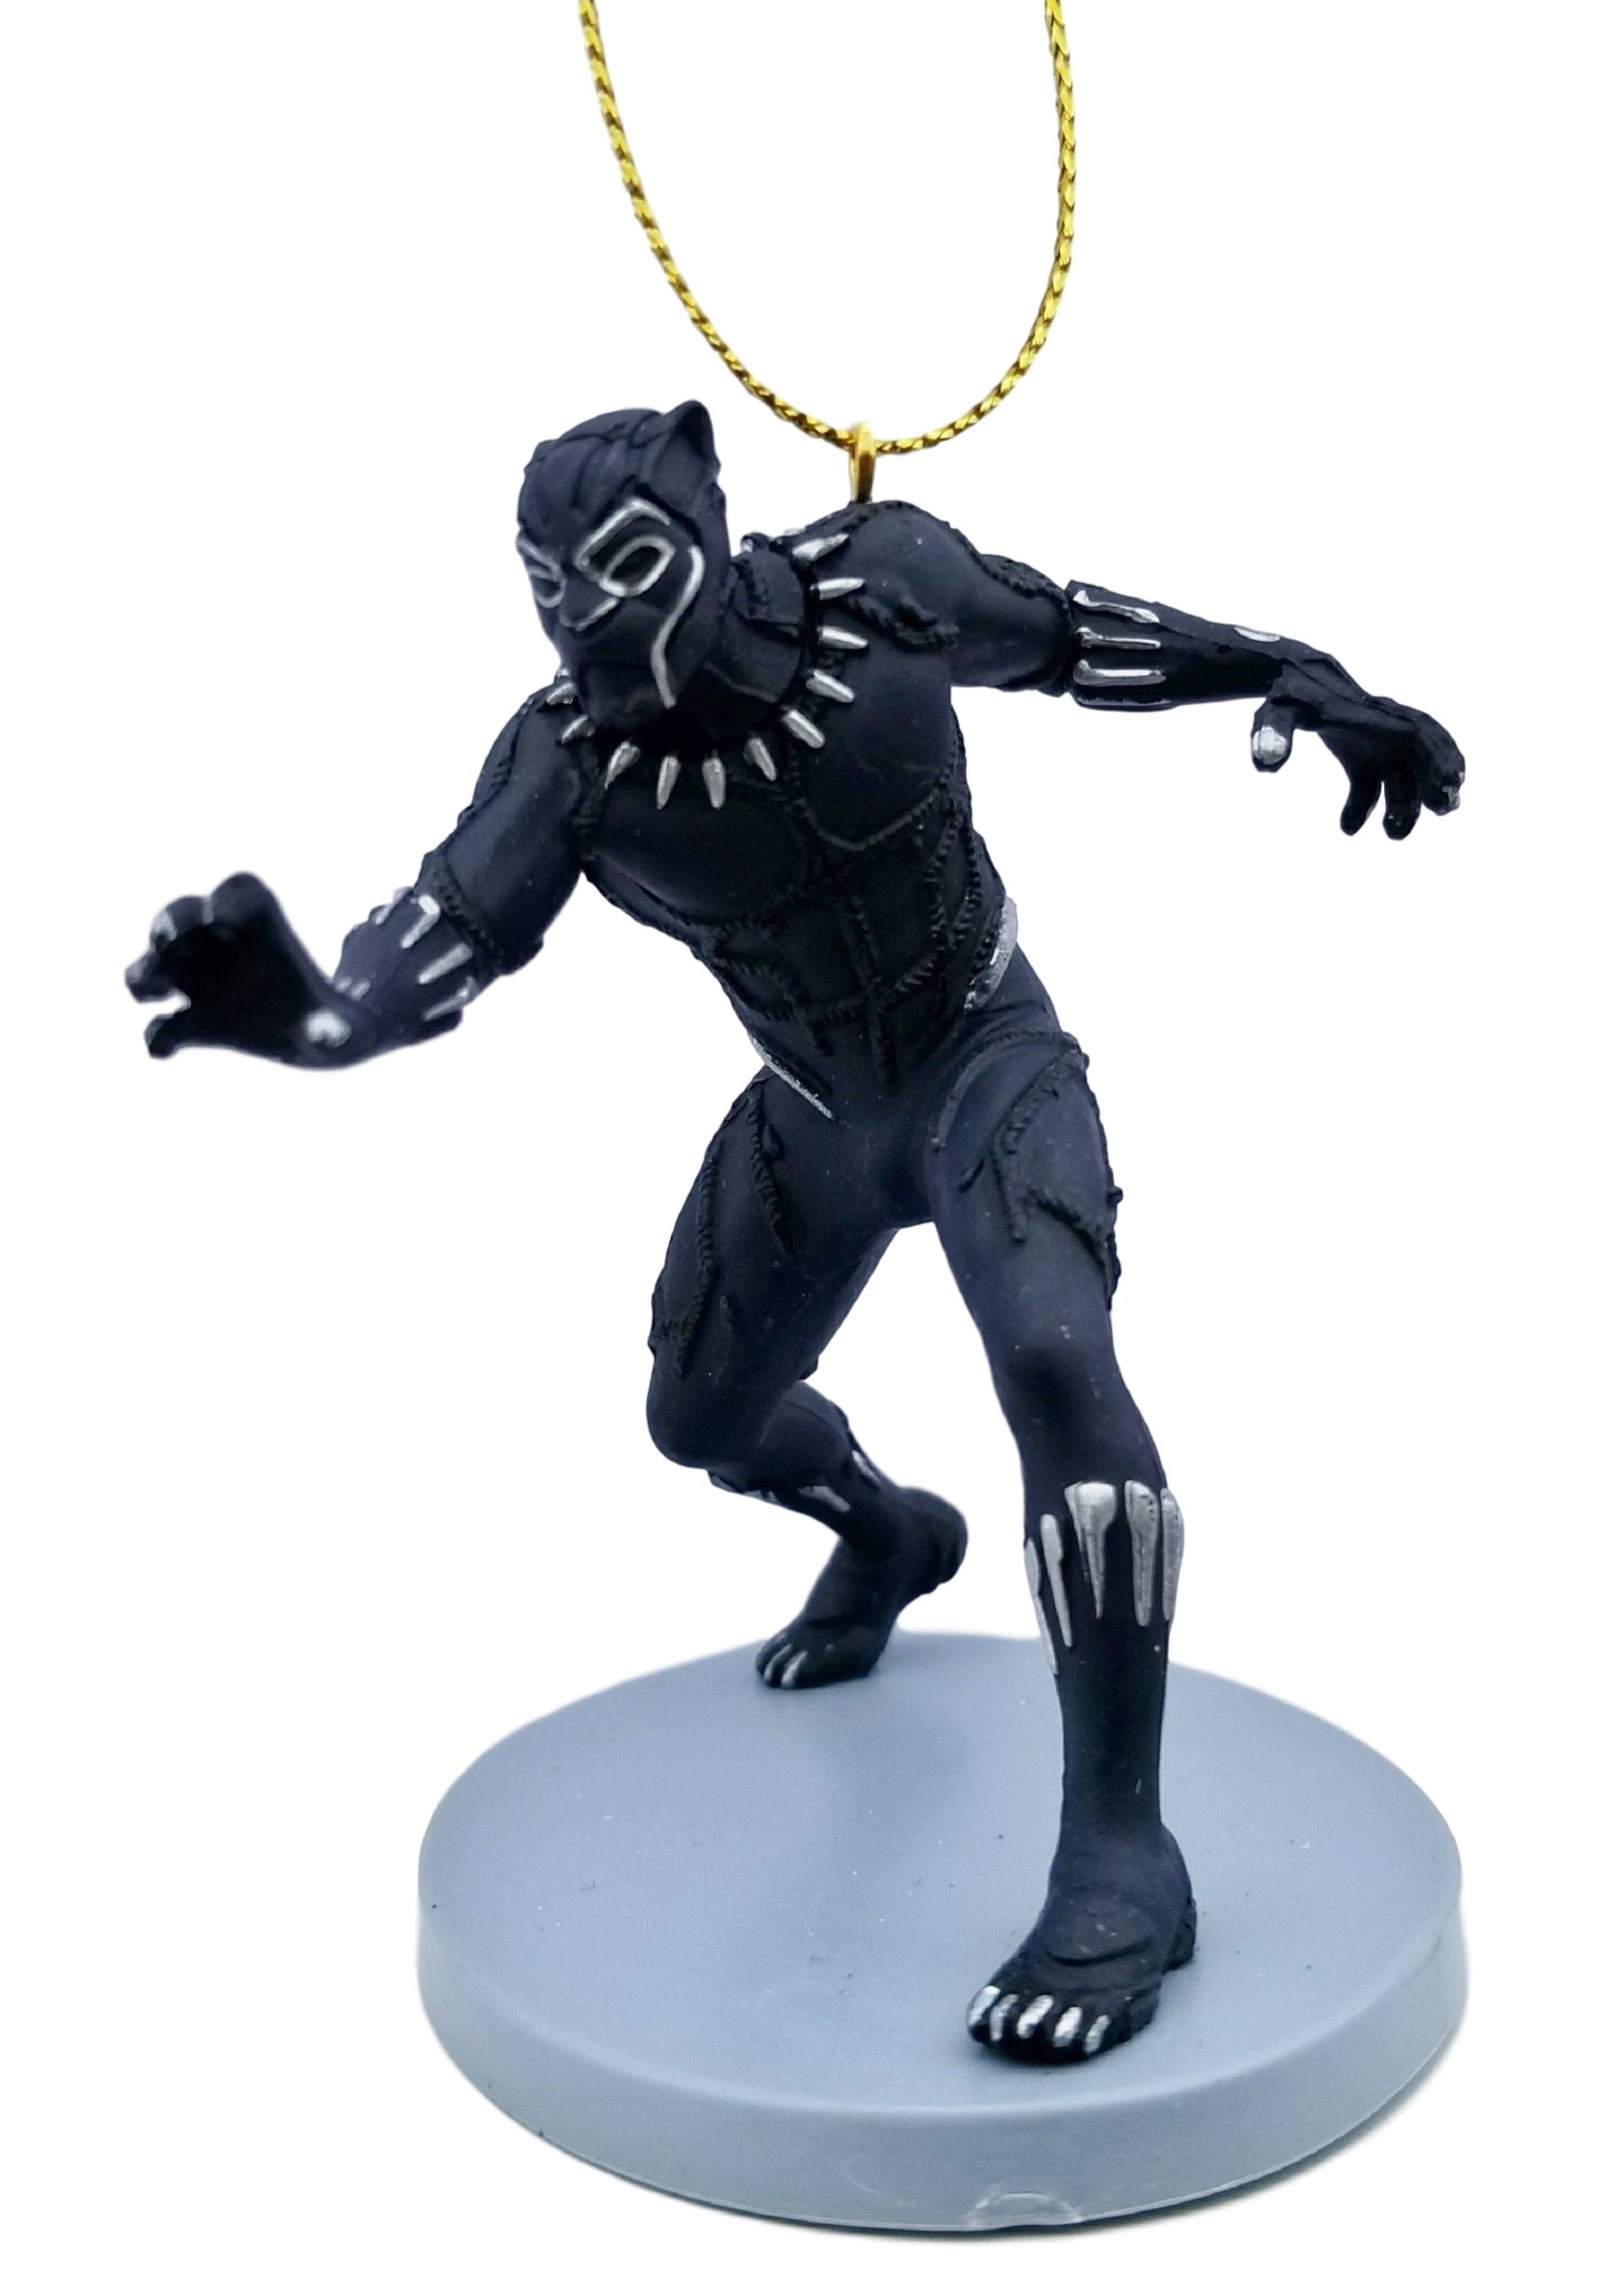 Black Panther (King T'Challa) Figurine Holiday Christmas Tree Ornament - Limited Availability - New for 2018 by Black Panther (King T'Challa)